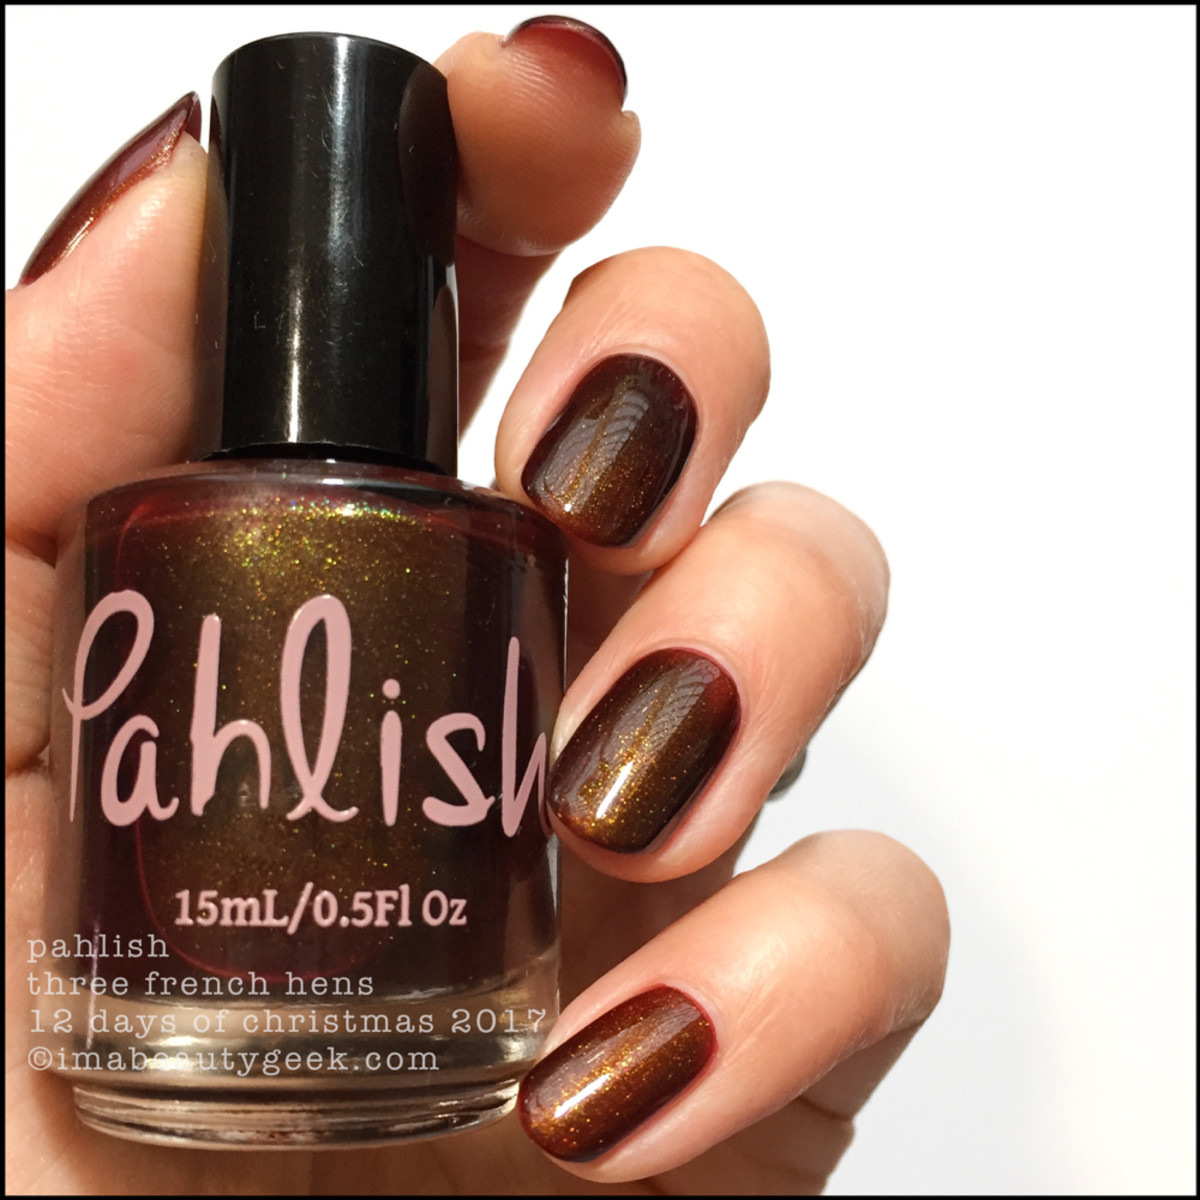 Pahlish Three French Hens - Pahlish 12 Days of Christmas 2017 1